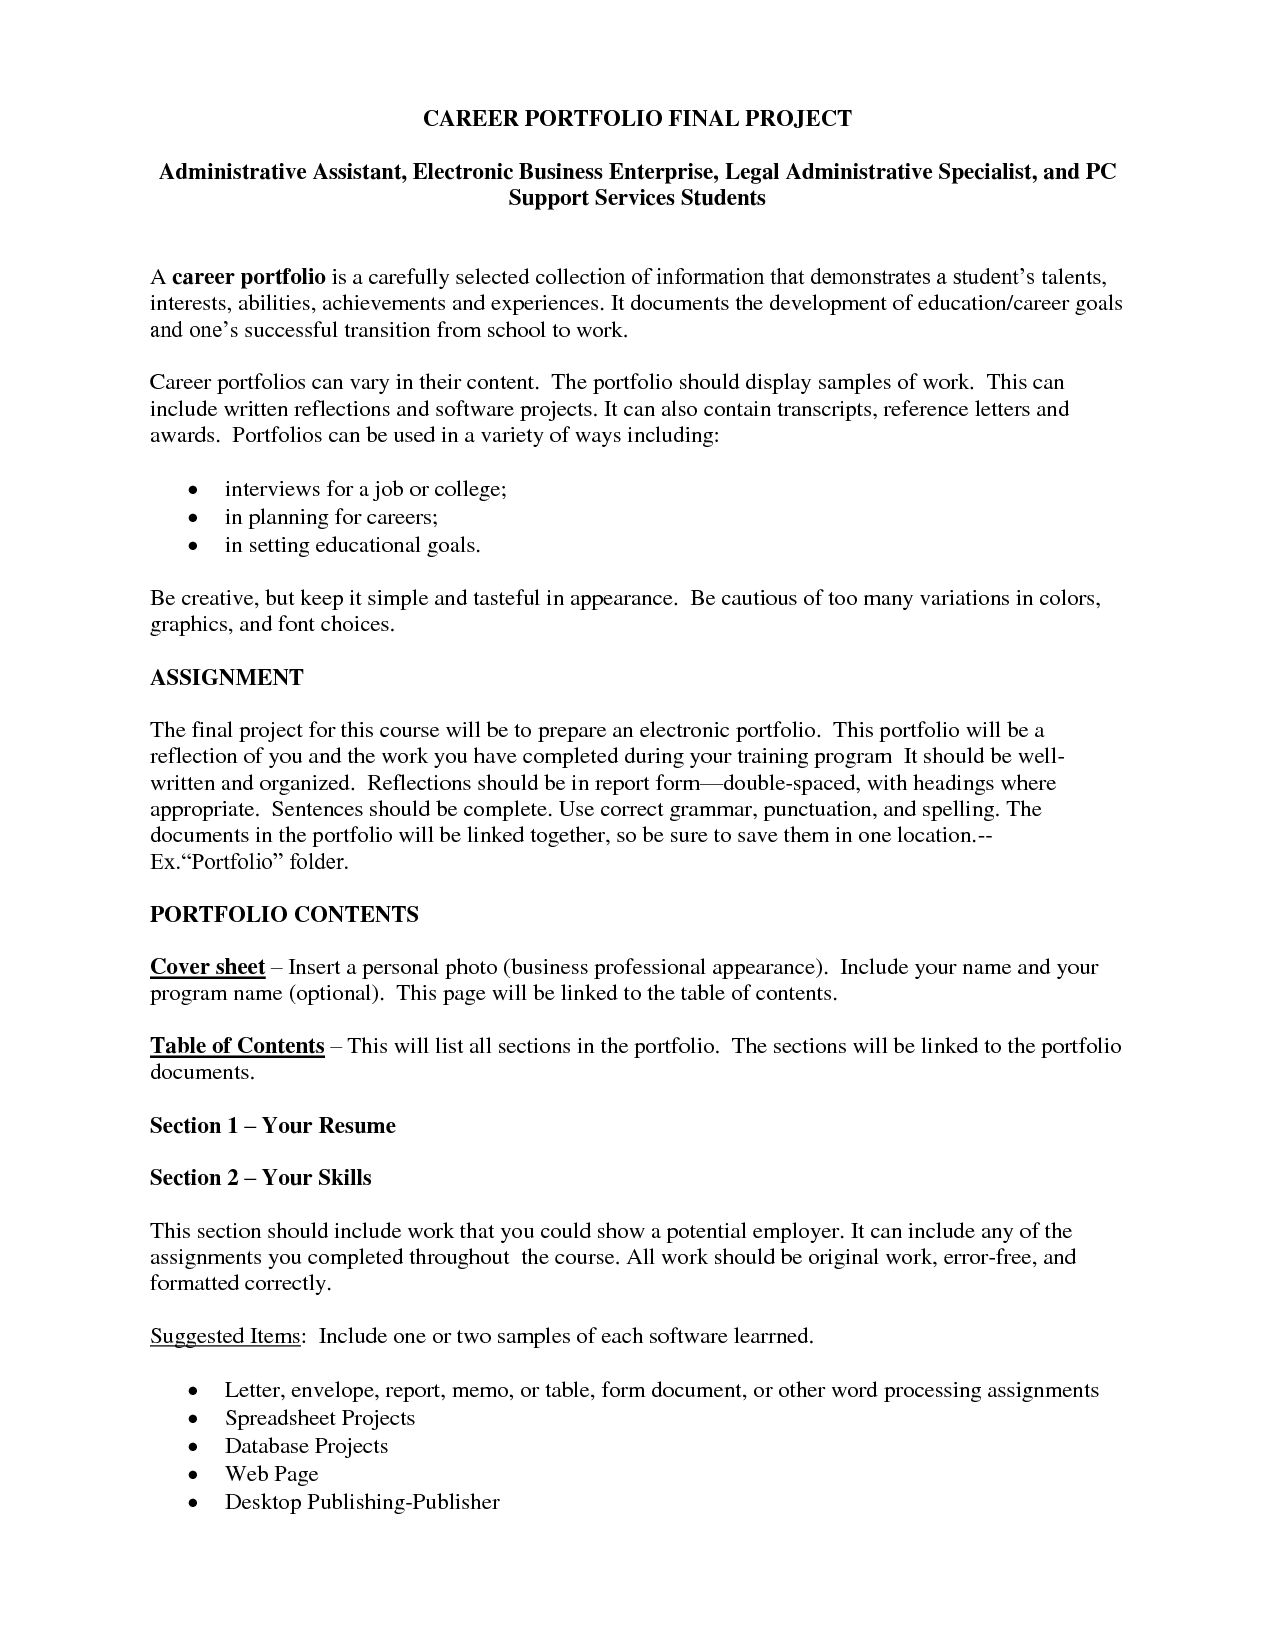 Resume For Office Job Resume Template For Medical Administrative Assistant Office